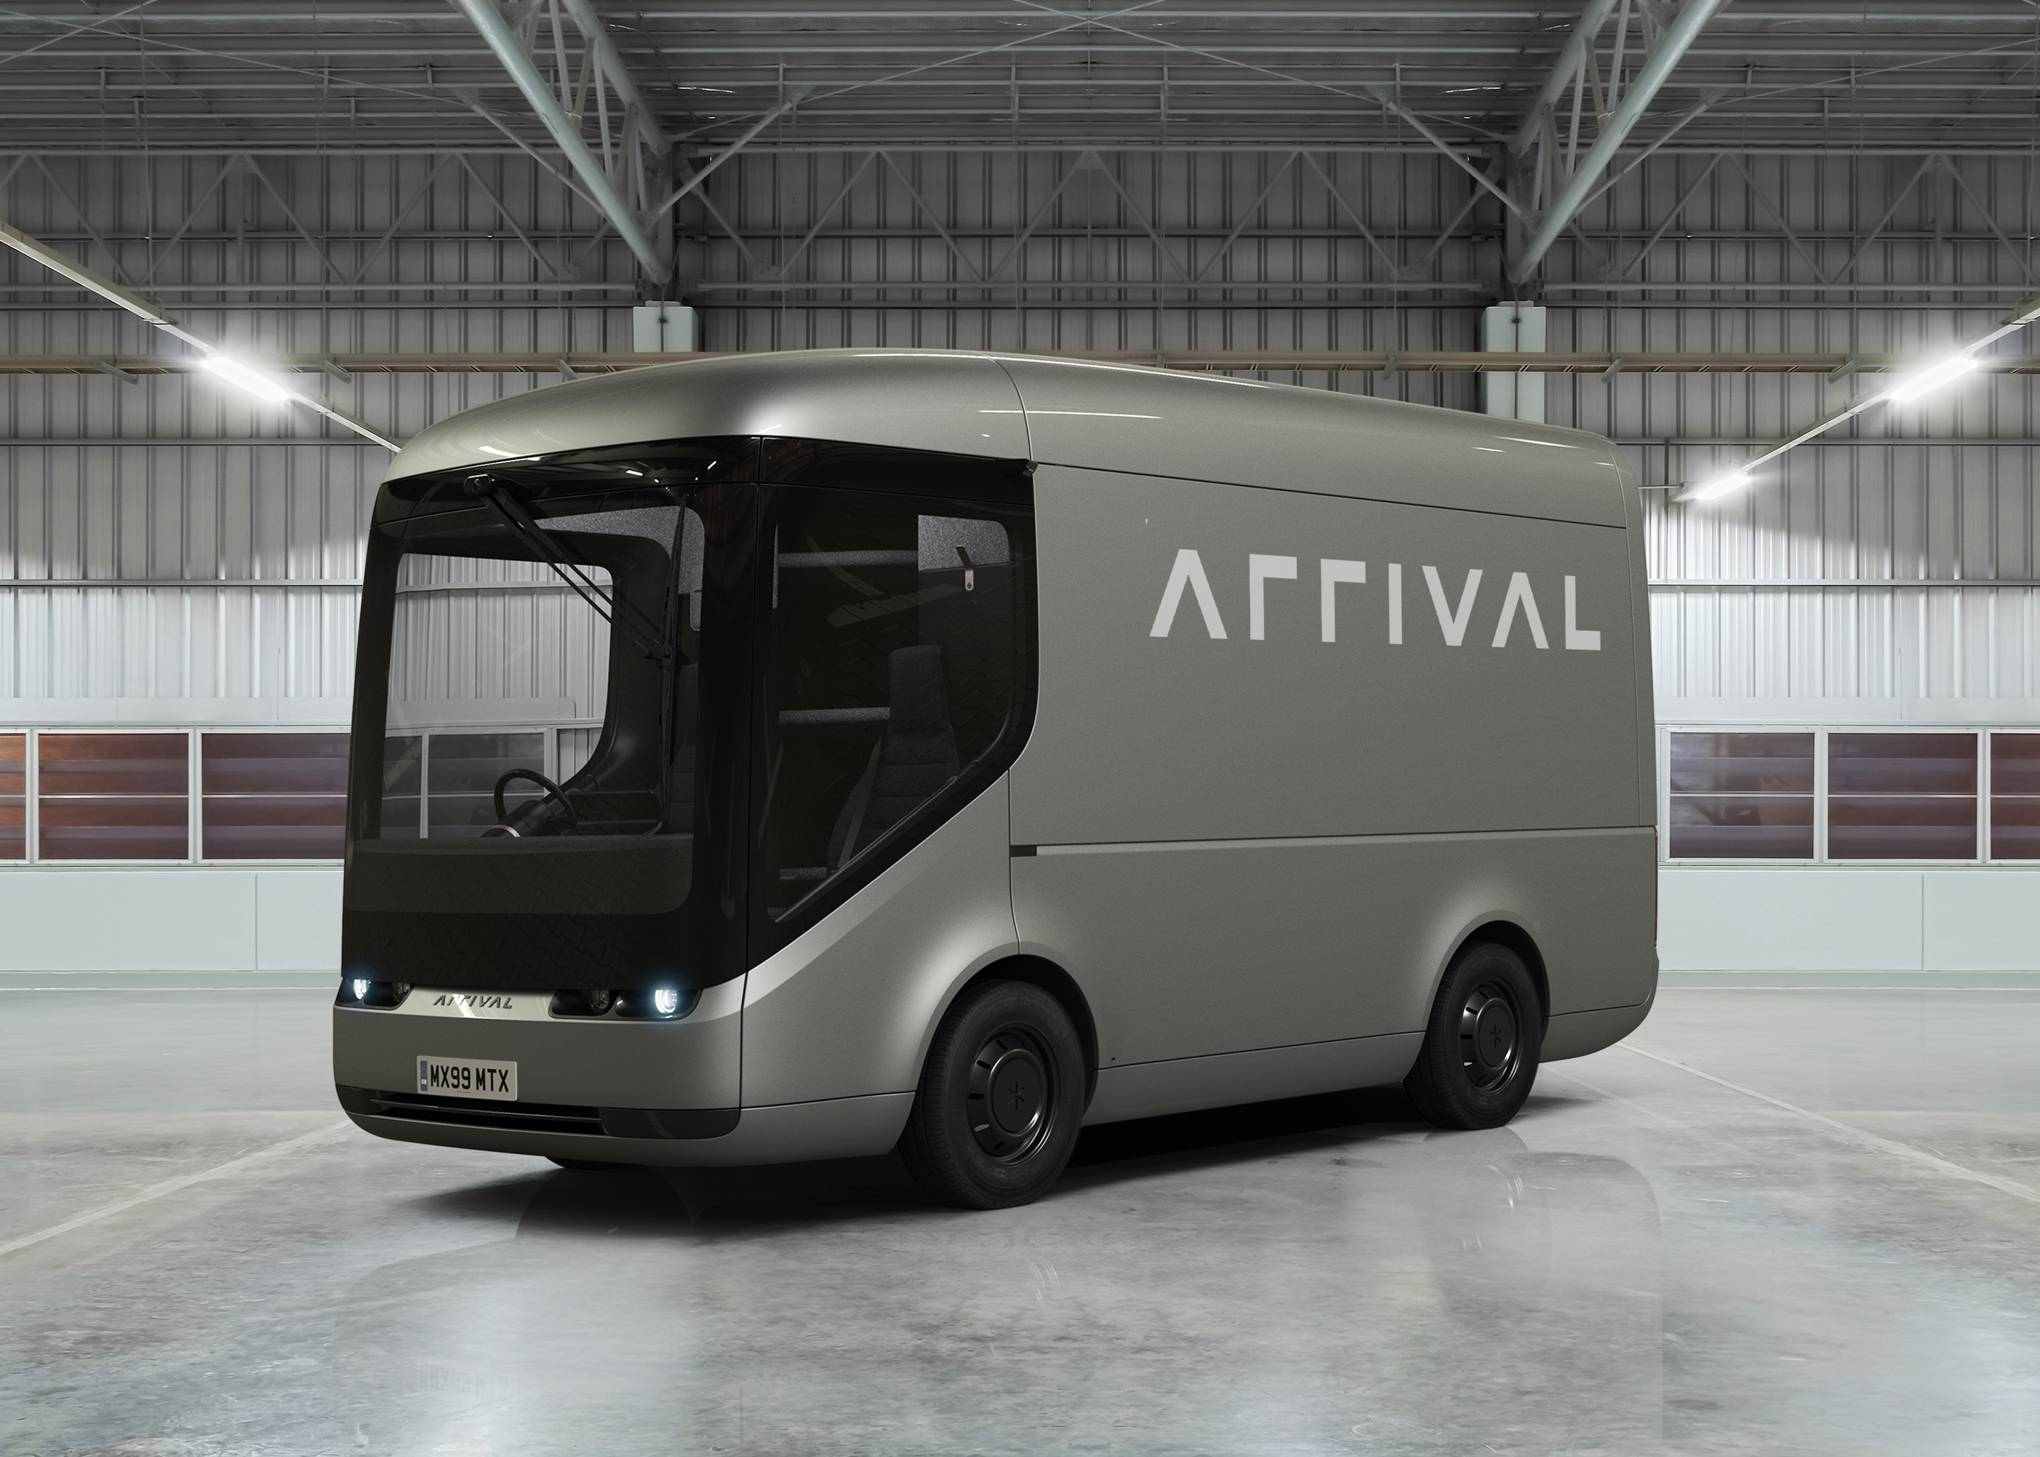 The Royal Mail is testing Arrival's electric trucks for moving post